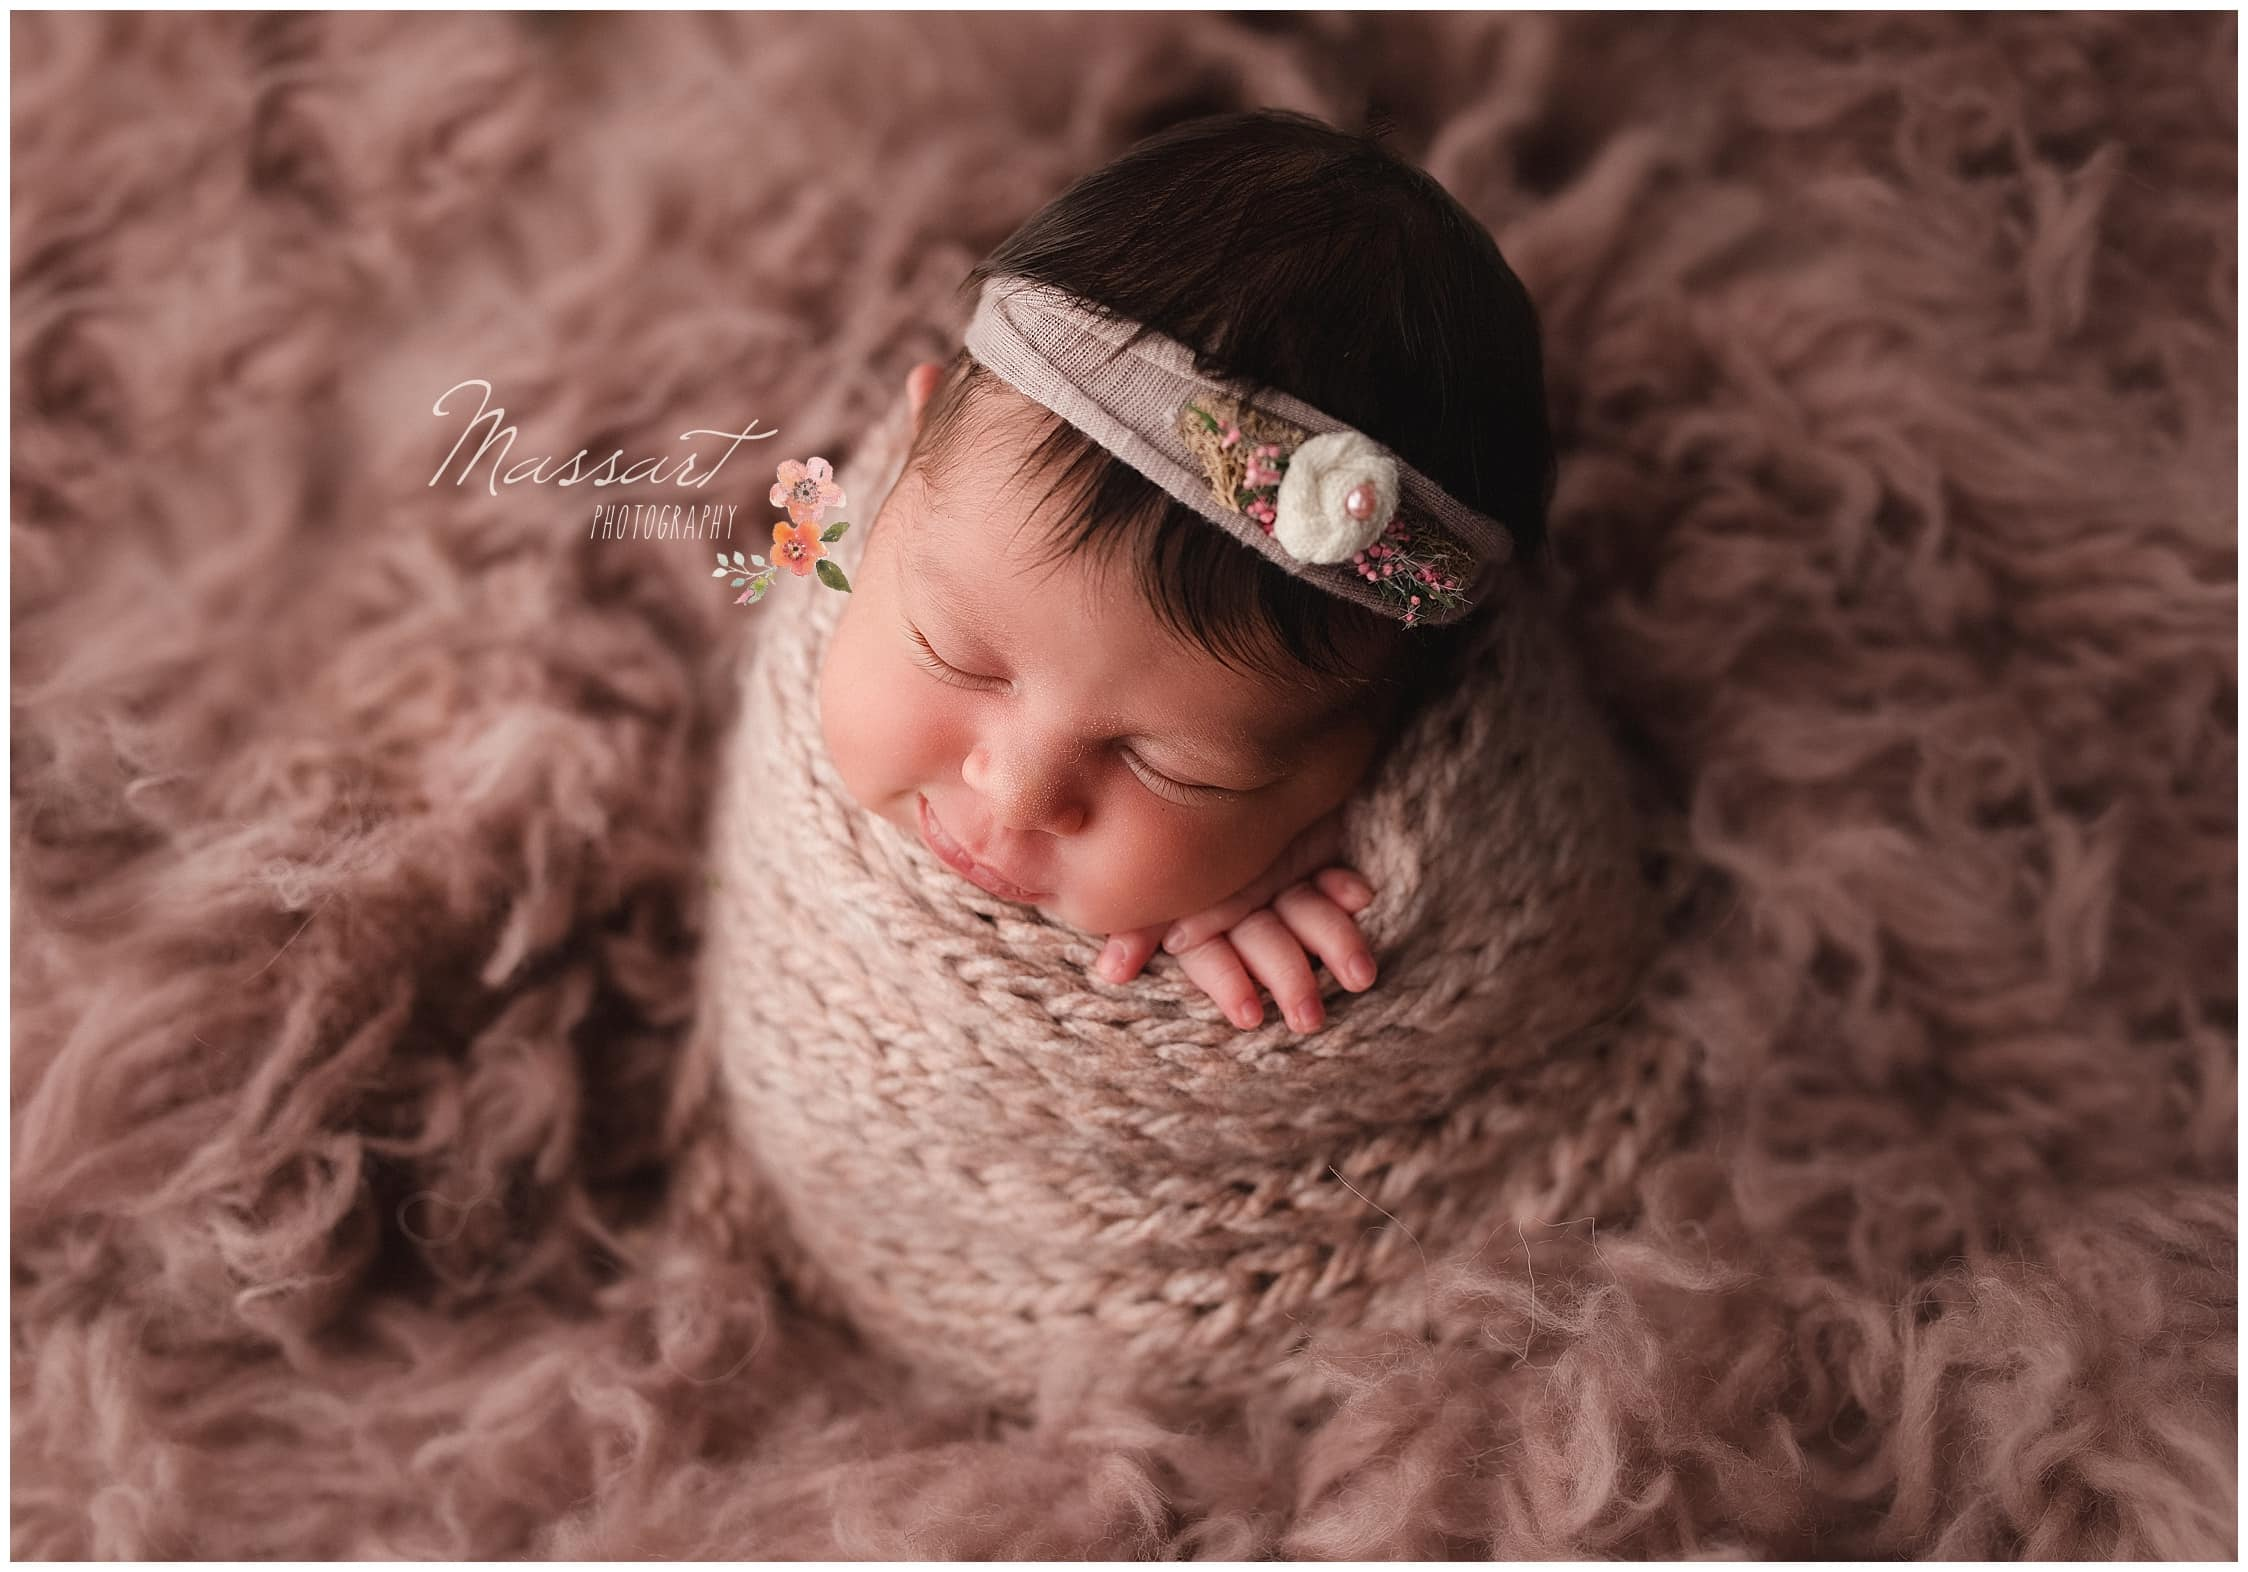 Baby girl wrapped in knit blanket during her newborn portrait shoot photographed by Massart Photography Rhode Island